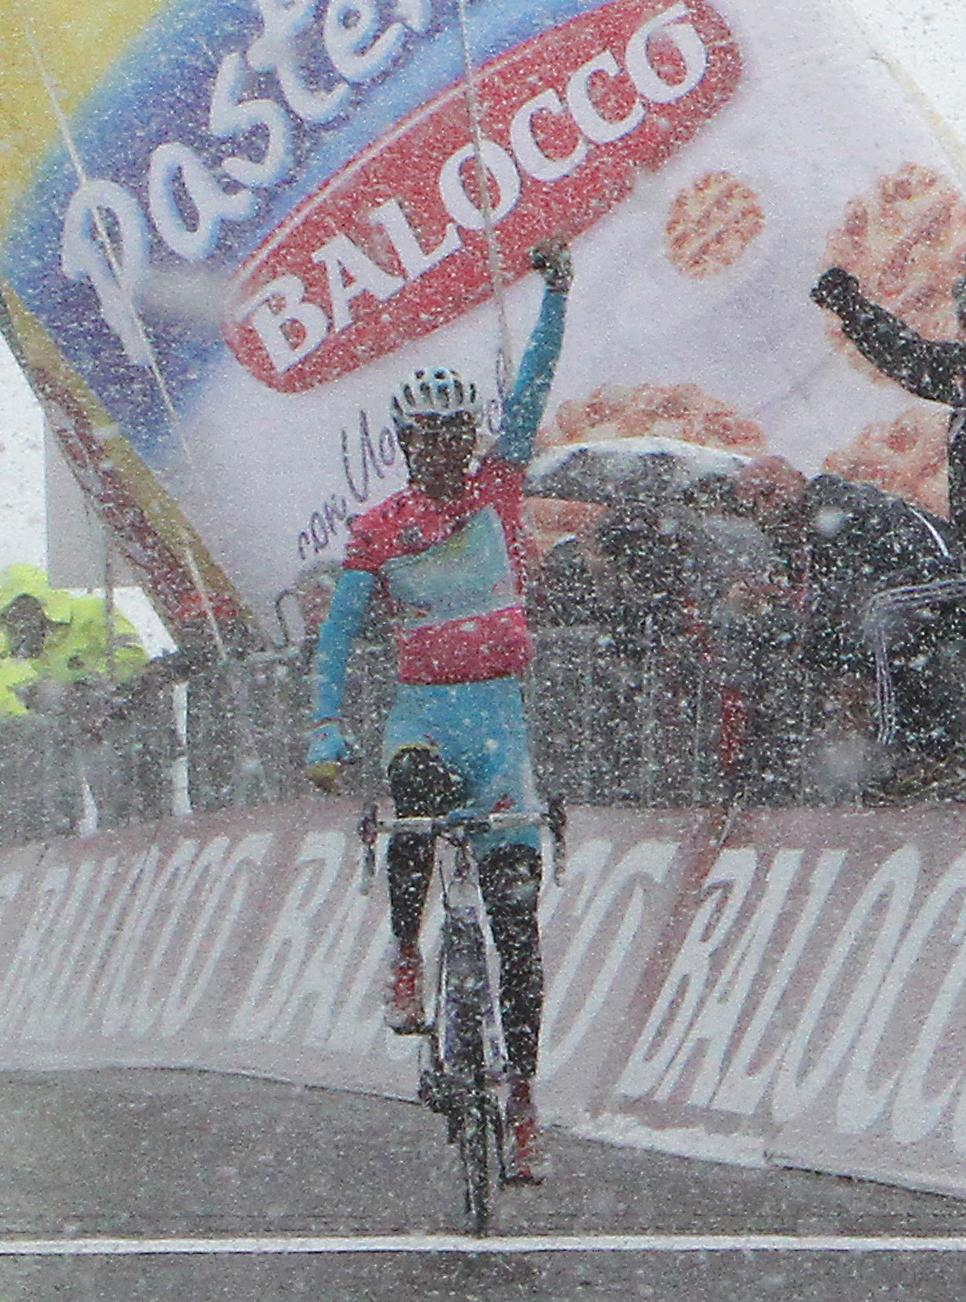 Vincenzo Nibali wins in the snow at Tre Cime di Lavaredo (picture RCS Sport)